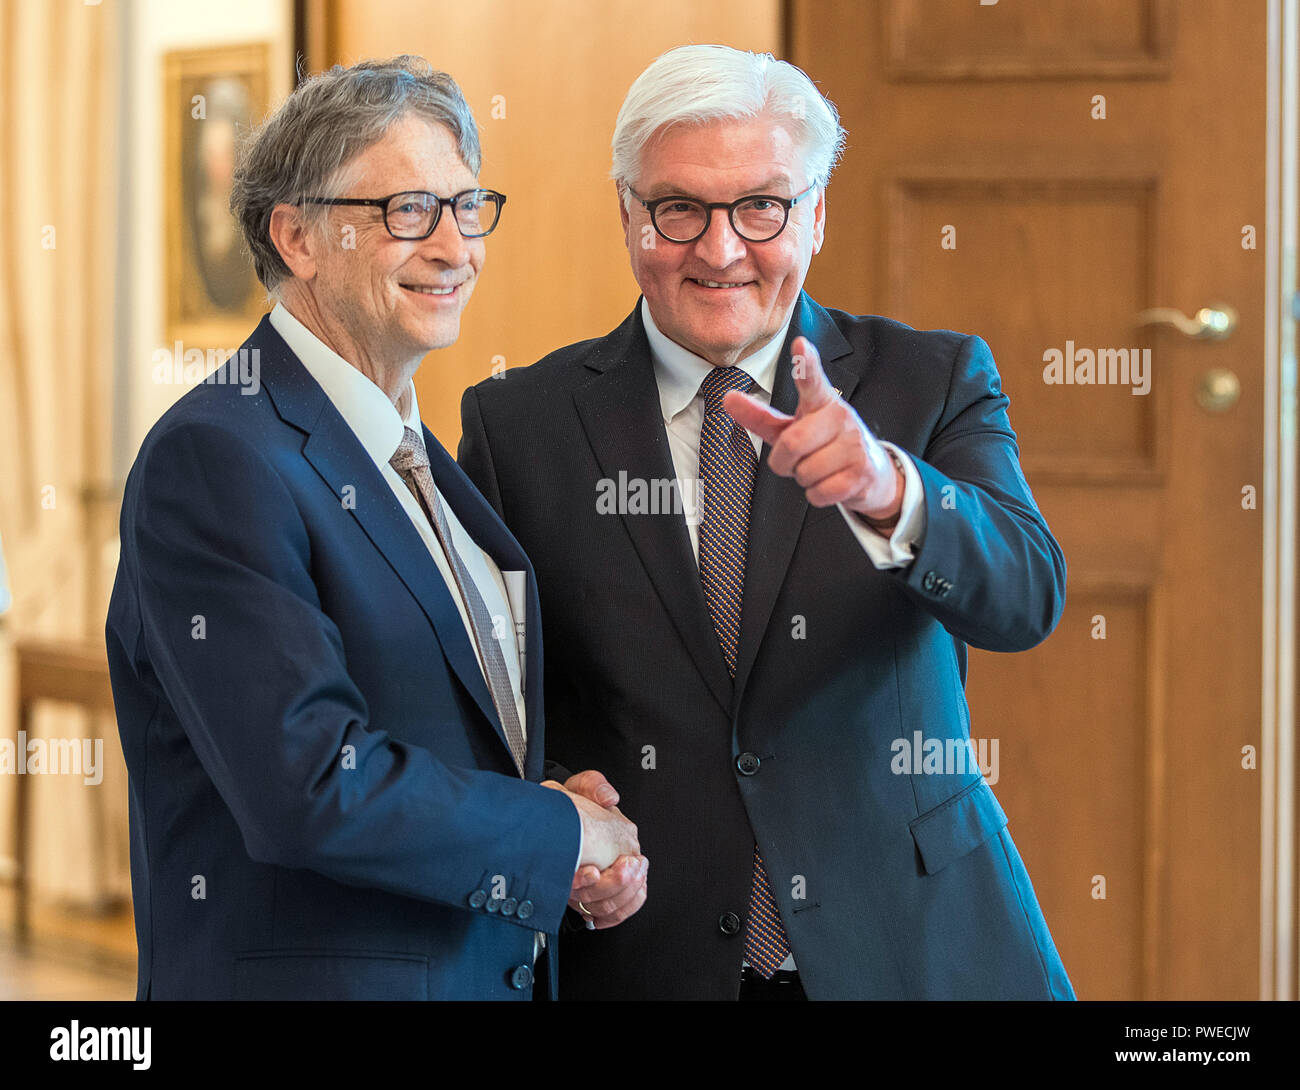 16 October 2018, Berlin: 16 October 2018, Germany, Berlin: Federal President Frank-Walter Steinmeier (R) welcomes Microsoft founder Bill Gates for an interview at Schloss Bellevue. The Microsoft founder is currently in Berlin for the annual meeting of the charitable initiative 'Grand Challenges', which he co-founded. Photo: Jens Büttner/dpa-Zentralbild/dpa - Stock Image